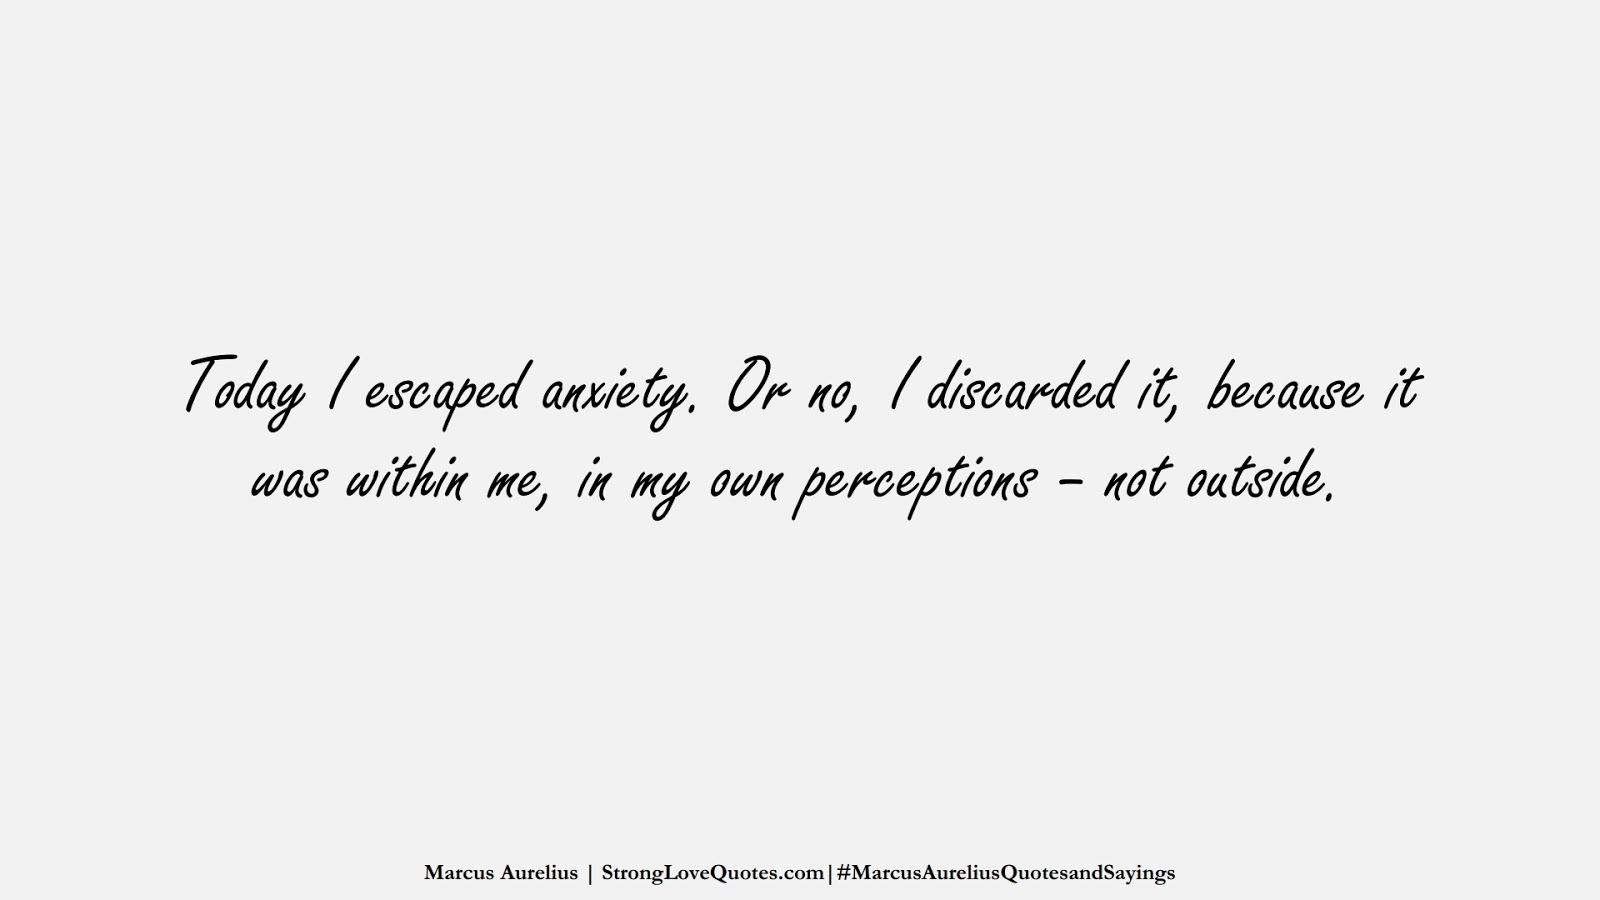 Today I escaped anxiety. Or no, I discarded it, because it was within me, in my own perceptions – not outside. (Marcus Aurelius);  #MarcusAureliusQuotesandSayings